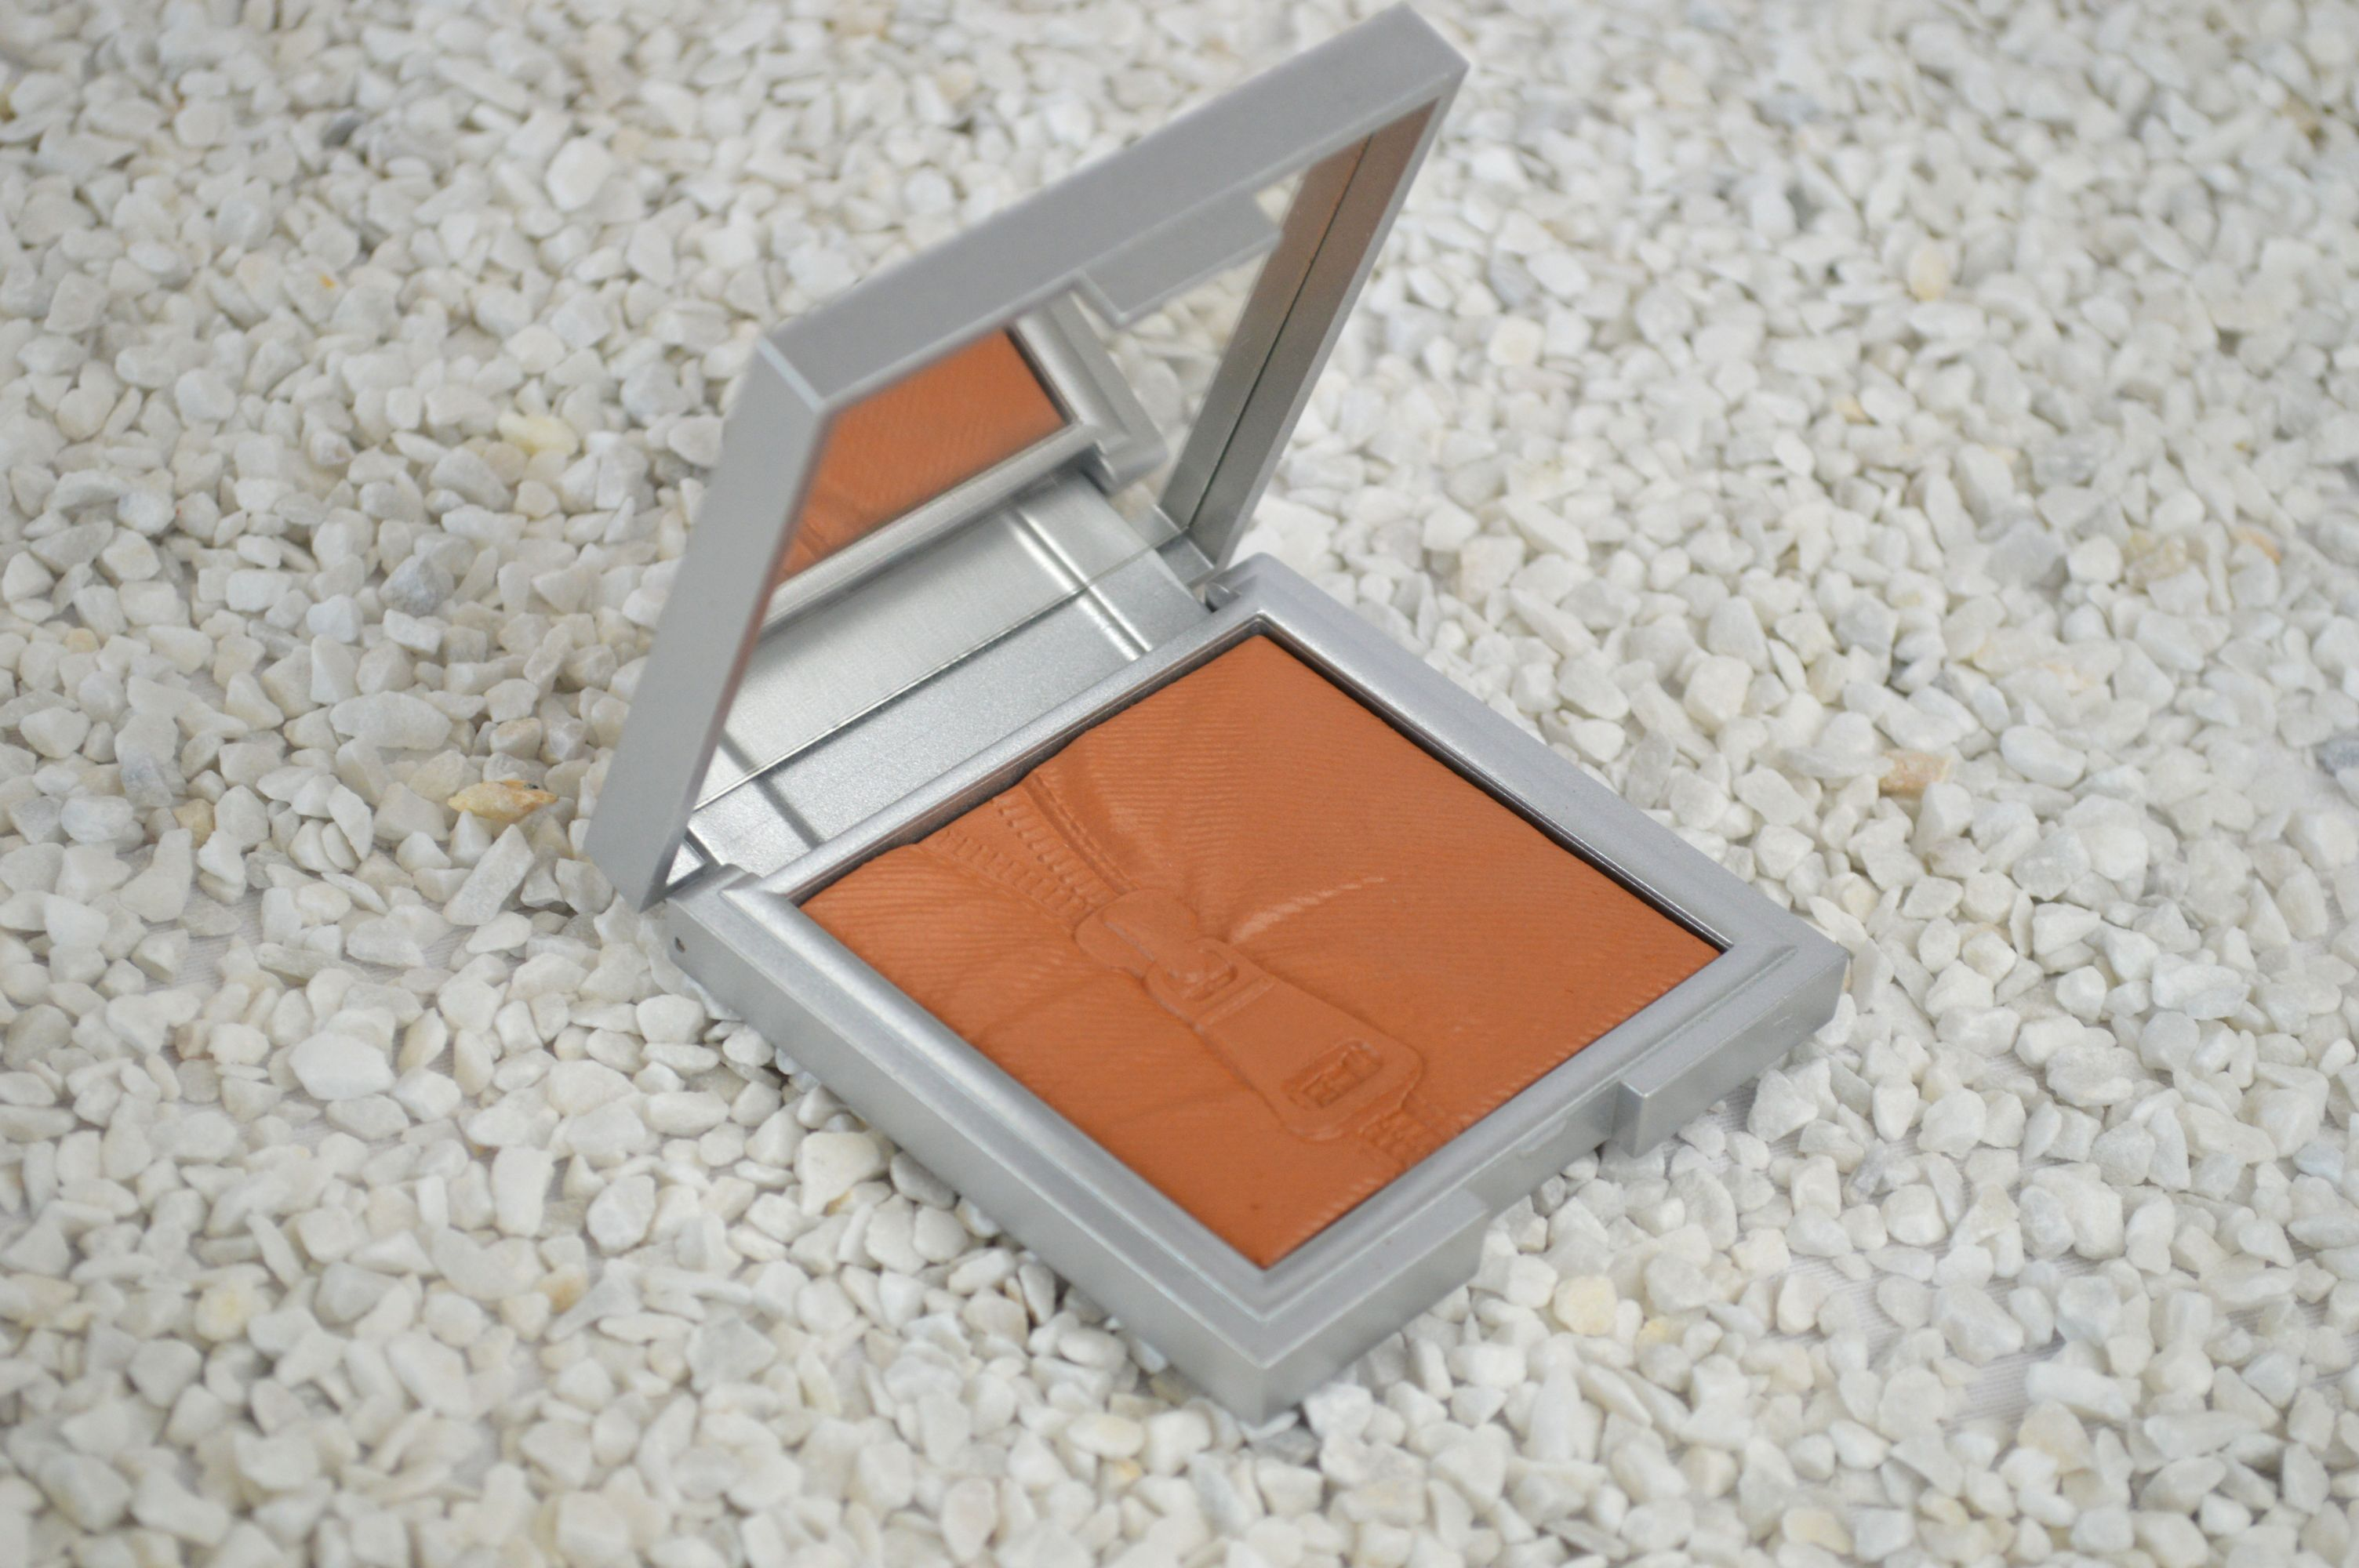 Kiko_Rock_attraction_bronzer_review